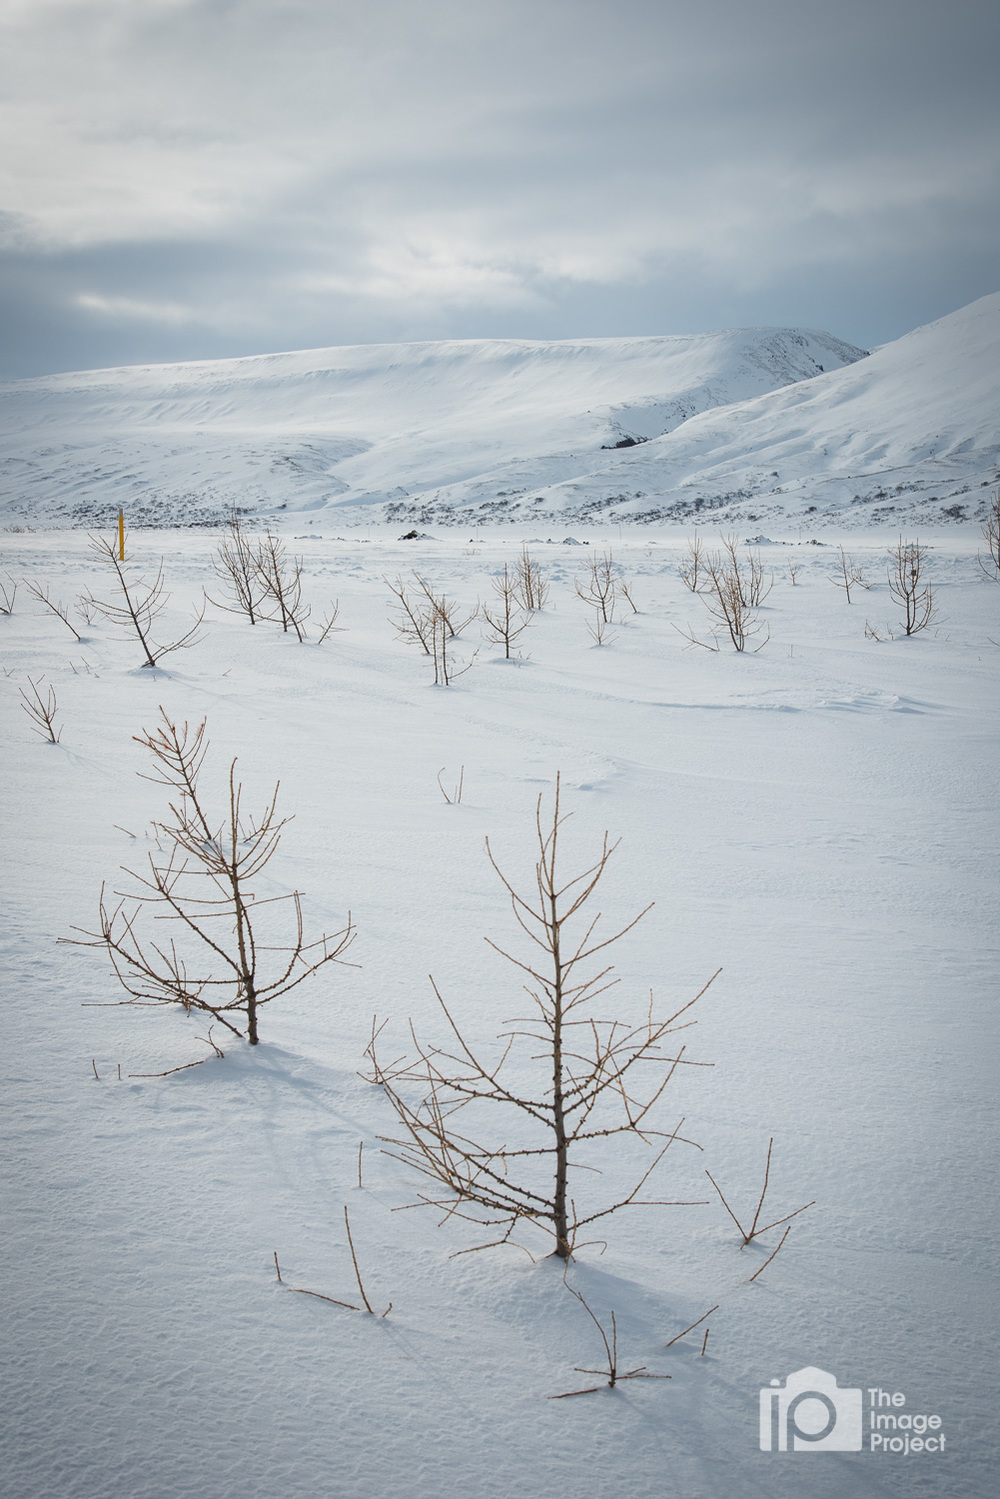 Sapling trees in frozen snowy winter landscape north iceland by nathan barry the image project